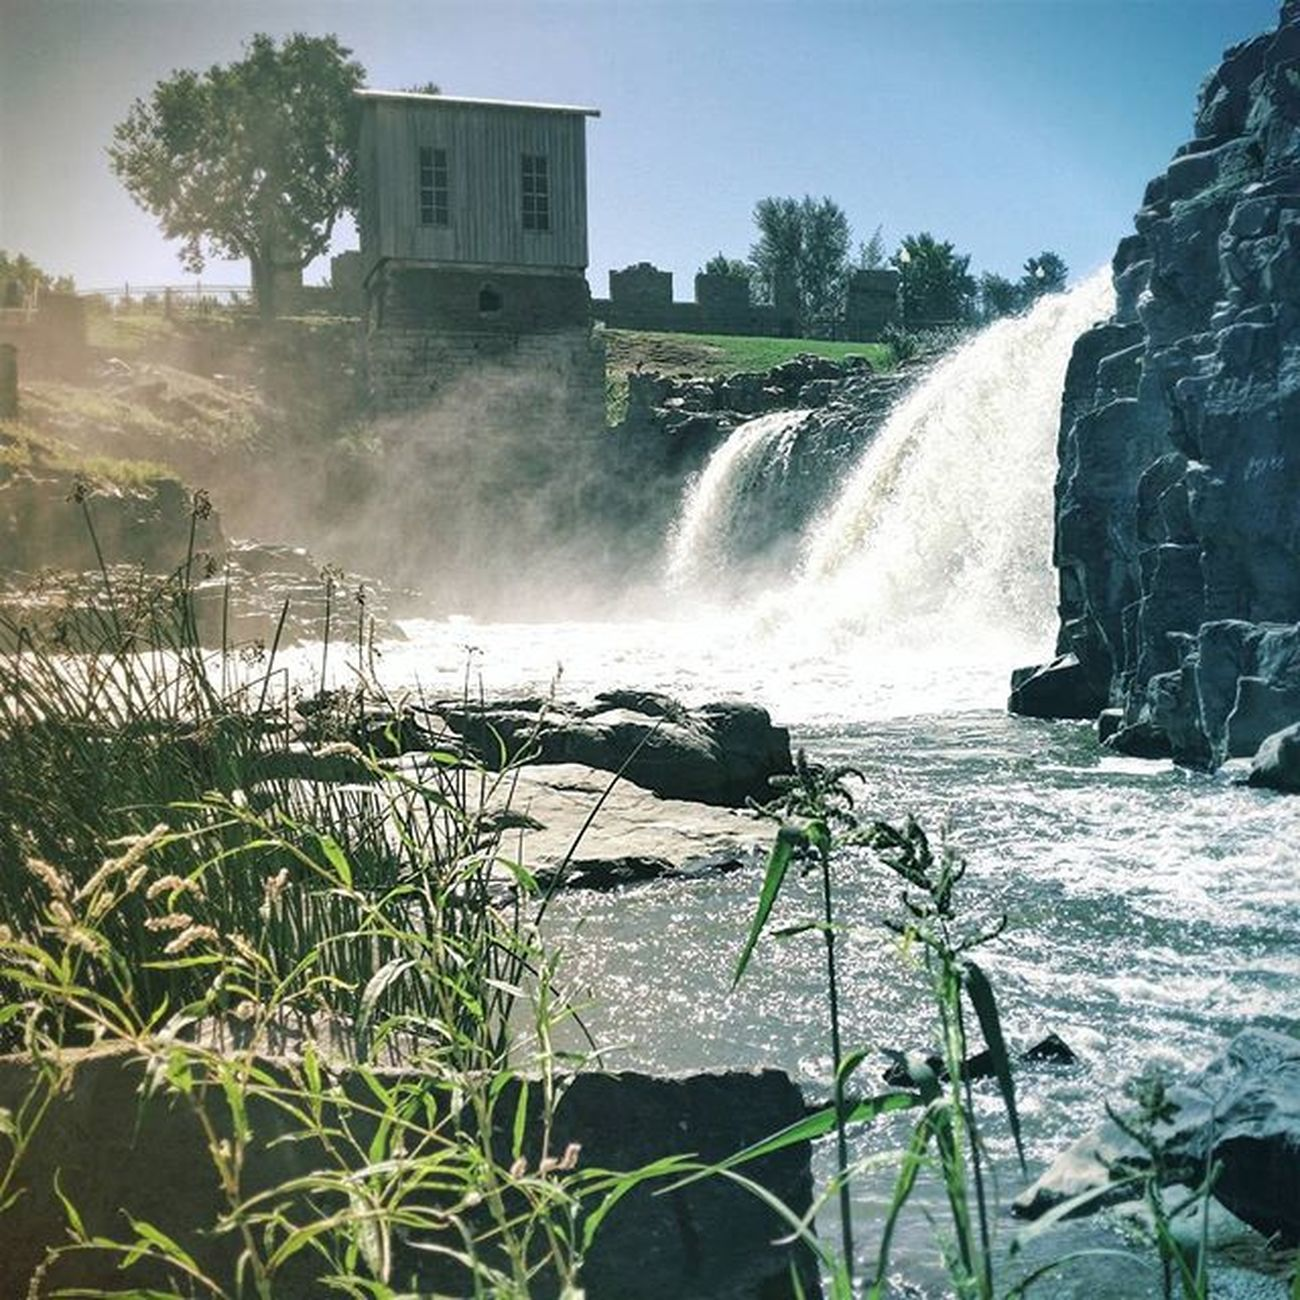 I always have to visit the Falls when I'm in town, this was Daxley's first trip and she loved it. Siouxfalls Southdakota Hifromsd Fallspark waterfalls mist beautyiseverywhere favoriteplaces picoftheday fallsinlove